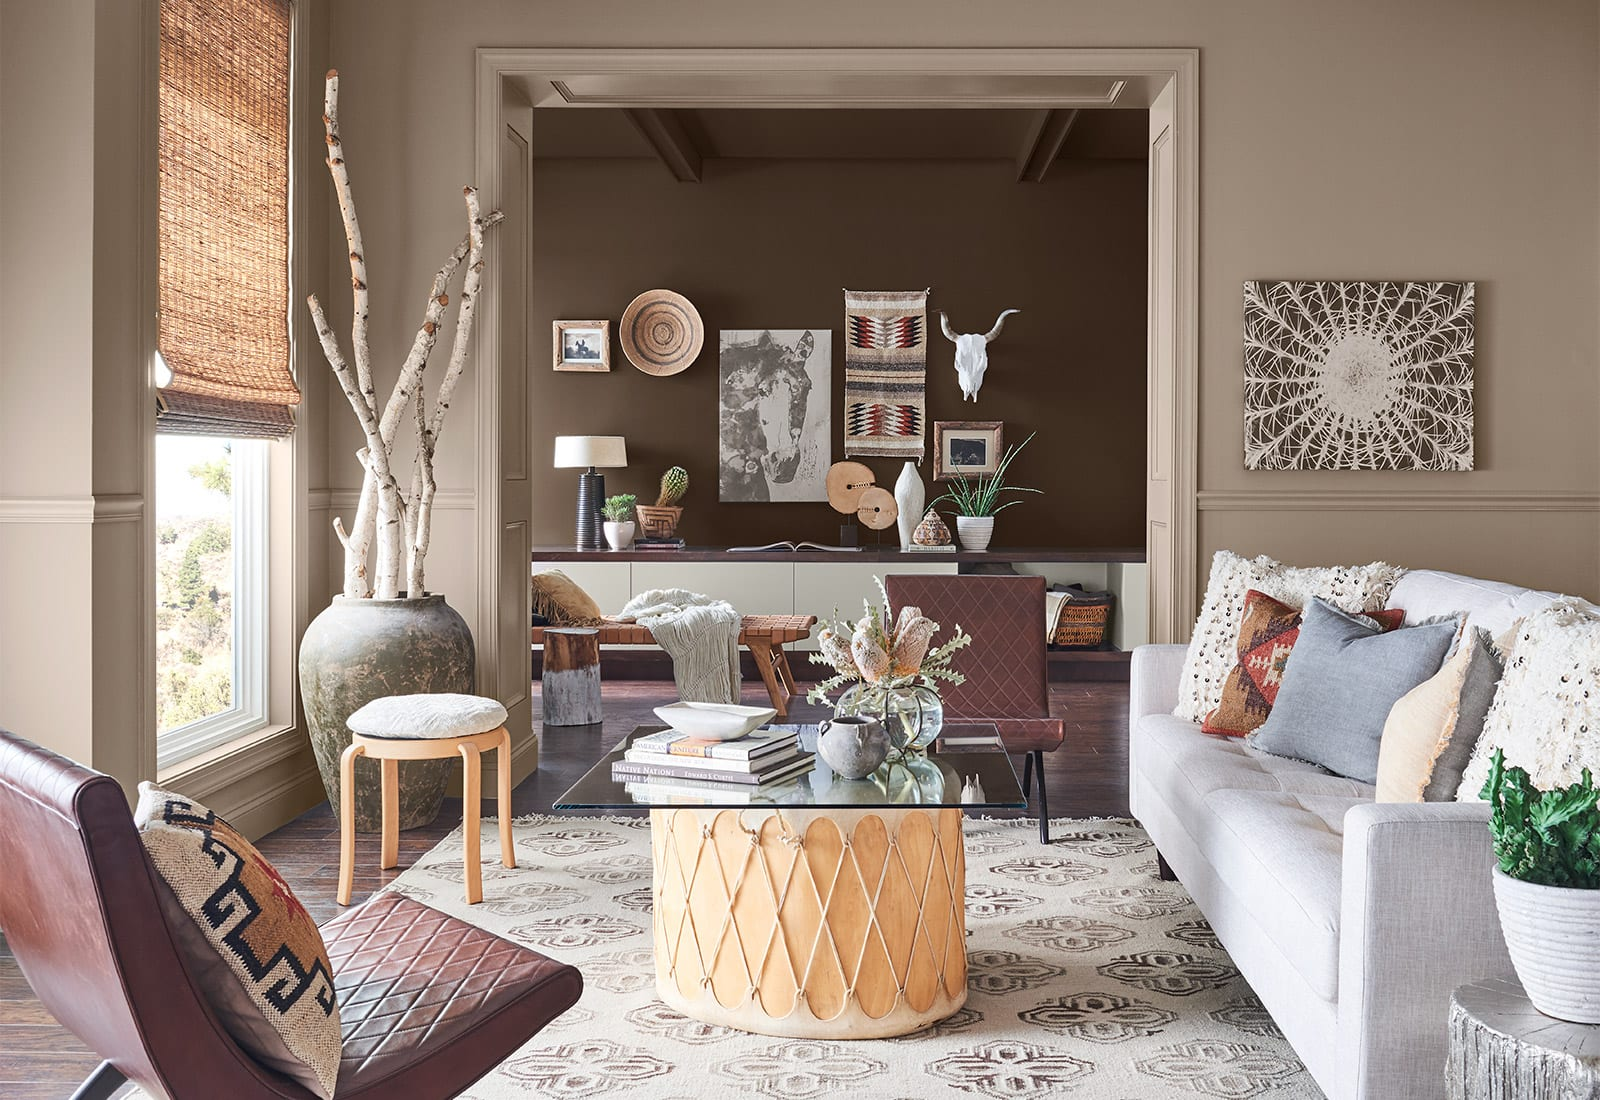 Sitting room with beige walls and southwestern decor.